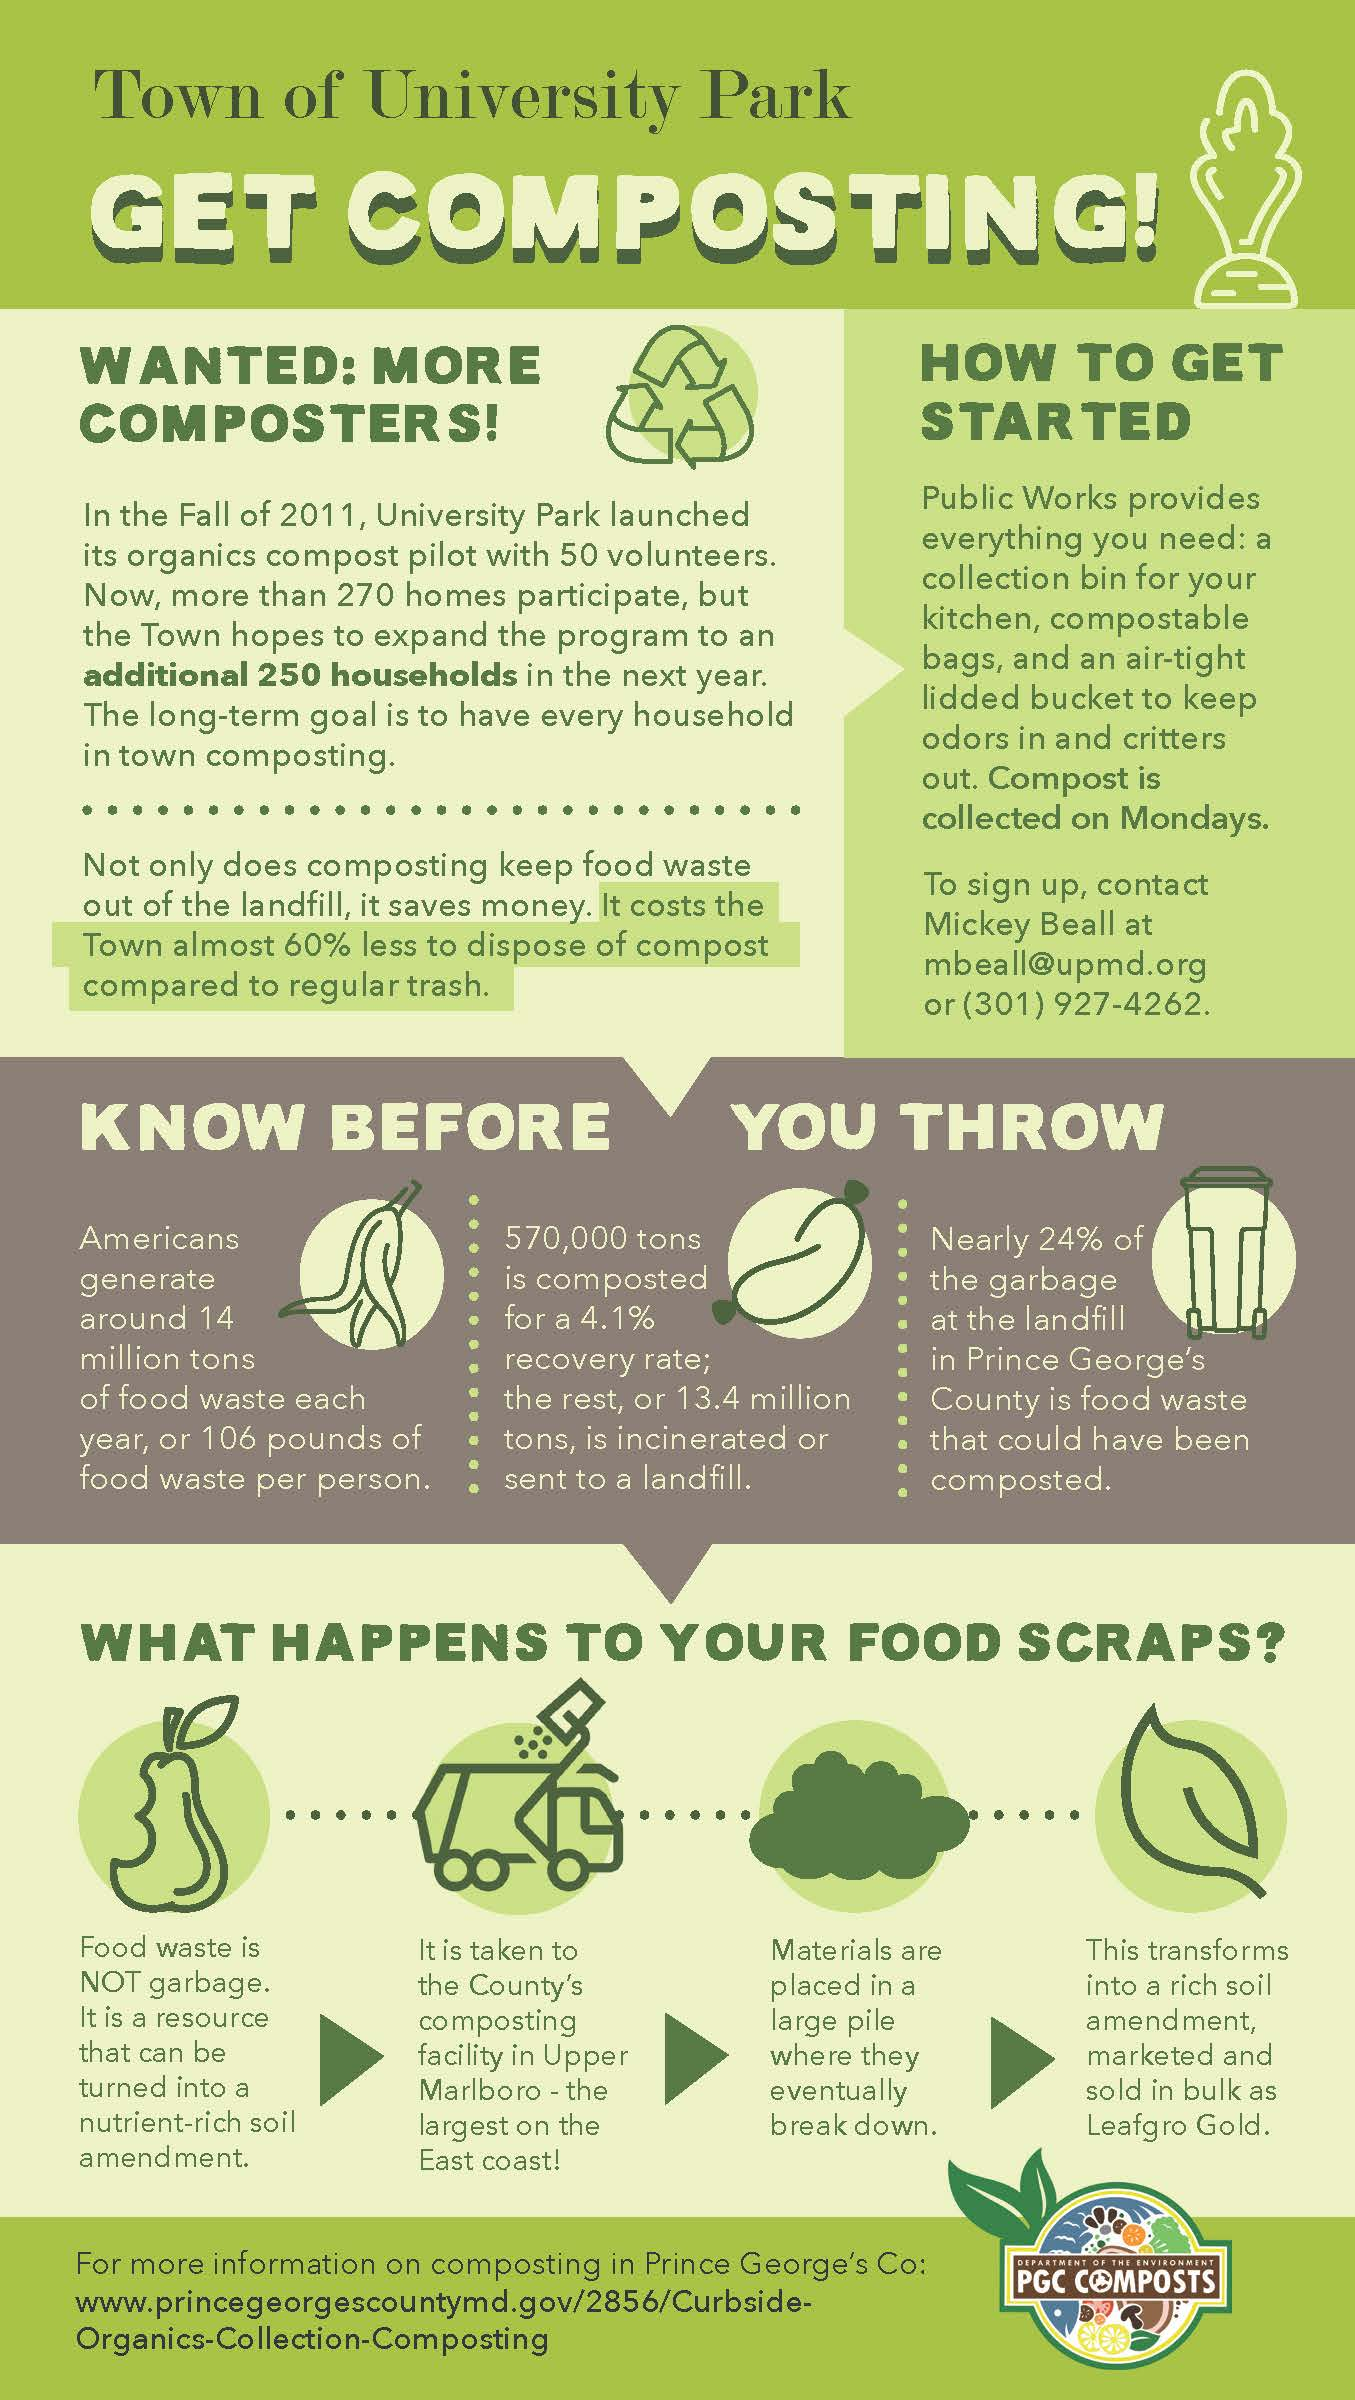 Compost Info graphic giving information about the program